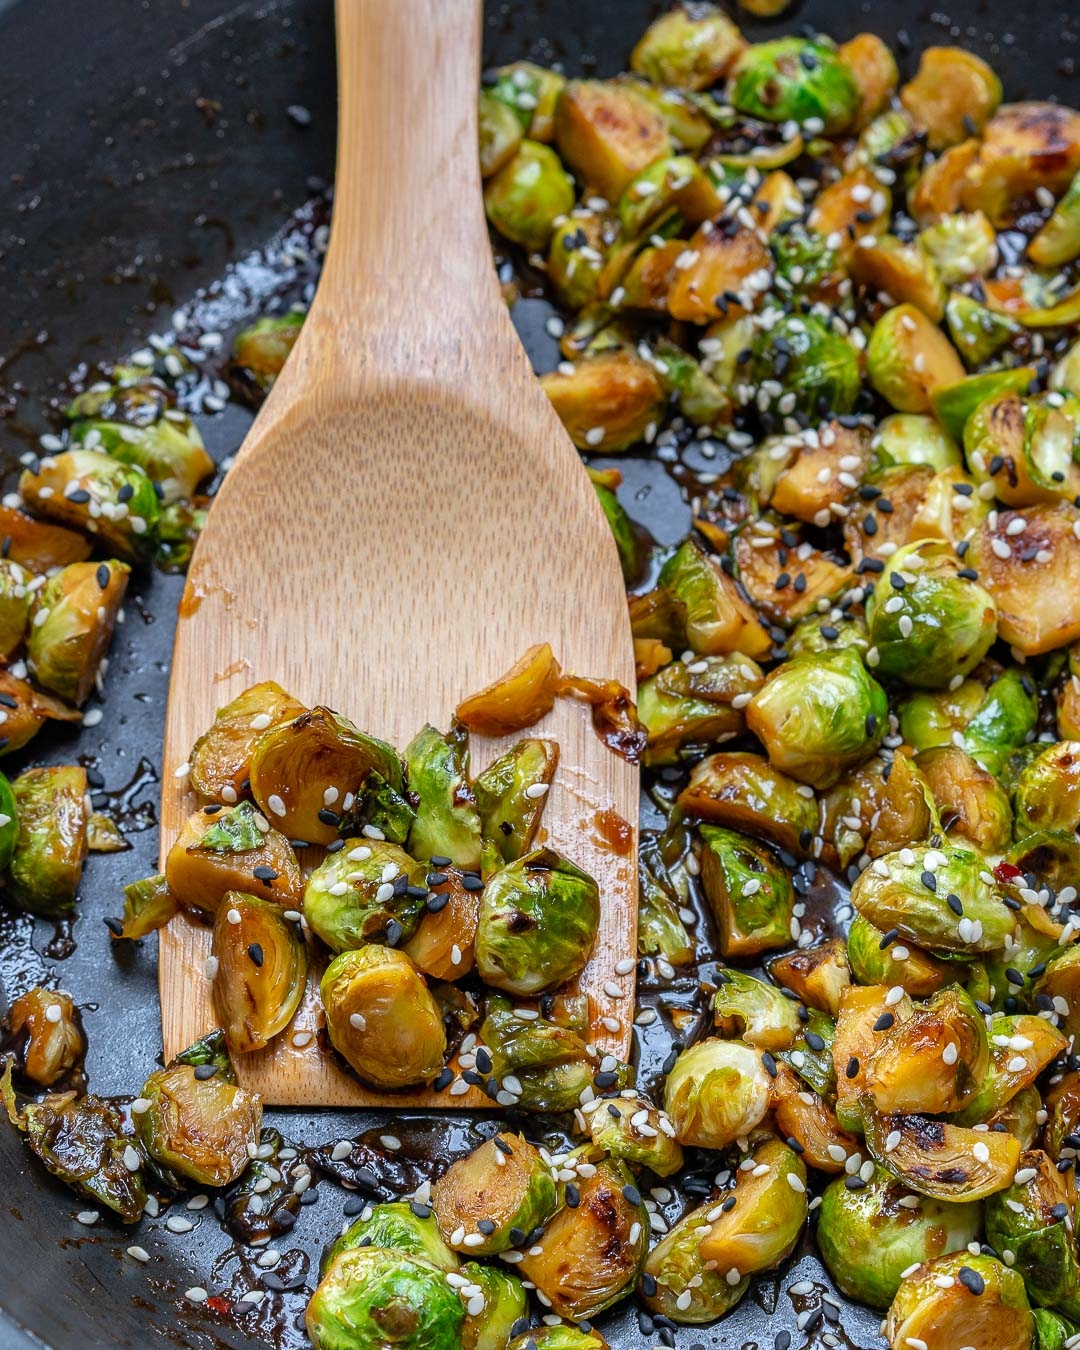 Healthy Stir fried Brussels Sprouts